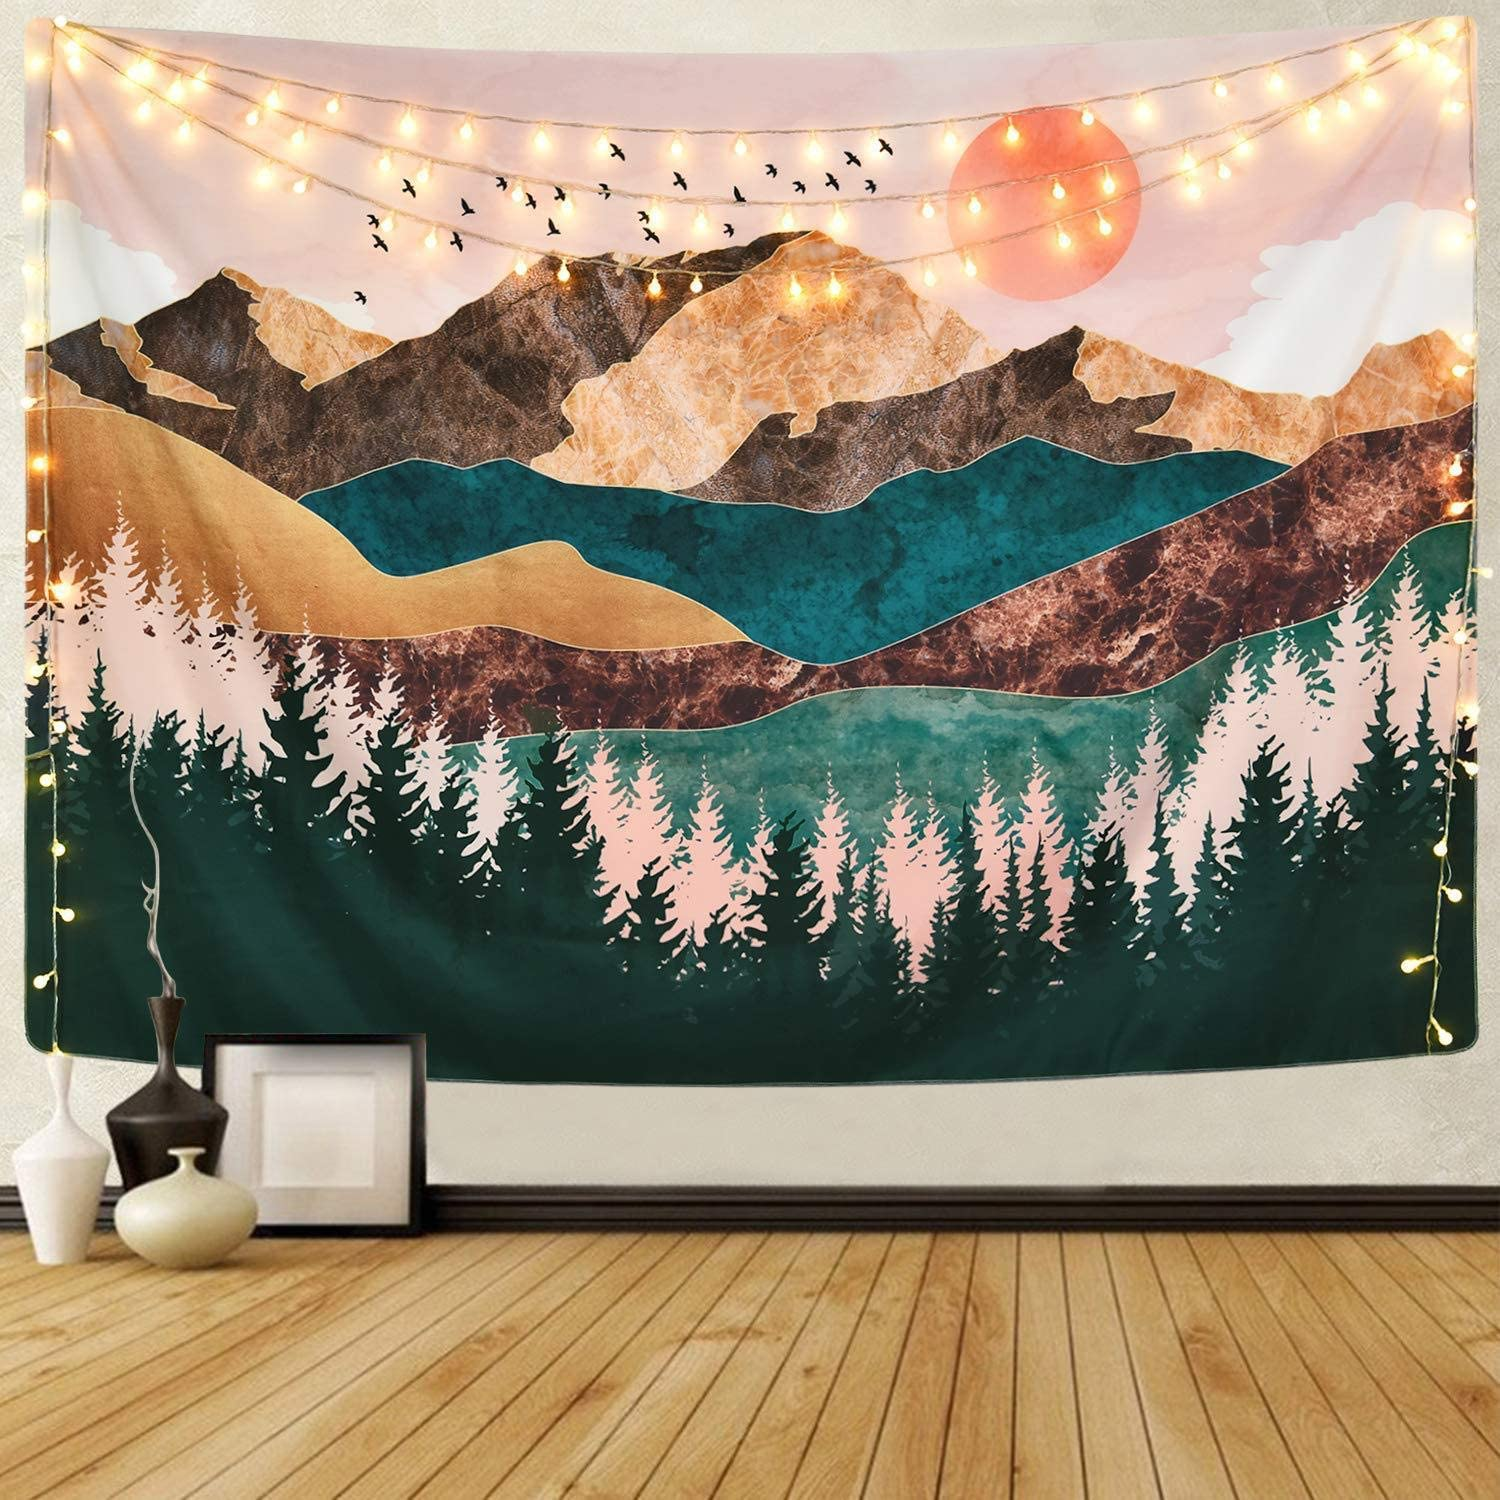 """DZH Enjoy Mountain Tapestry Wall Hanging Forest Tree Sunset Tapestry Nature Landscape Tapestry Home Decorations for Bedroom Living Room, Dorm, Art Home Decor (51.2"""" x 59.1"""")"""